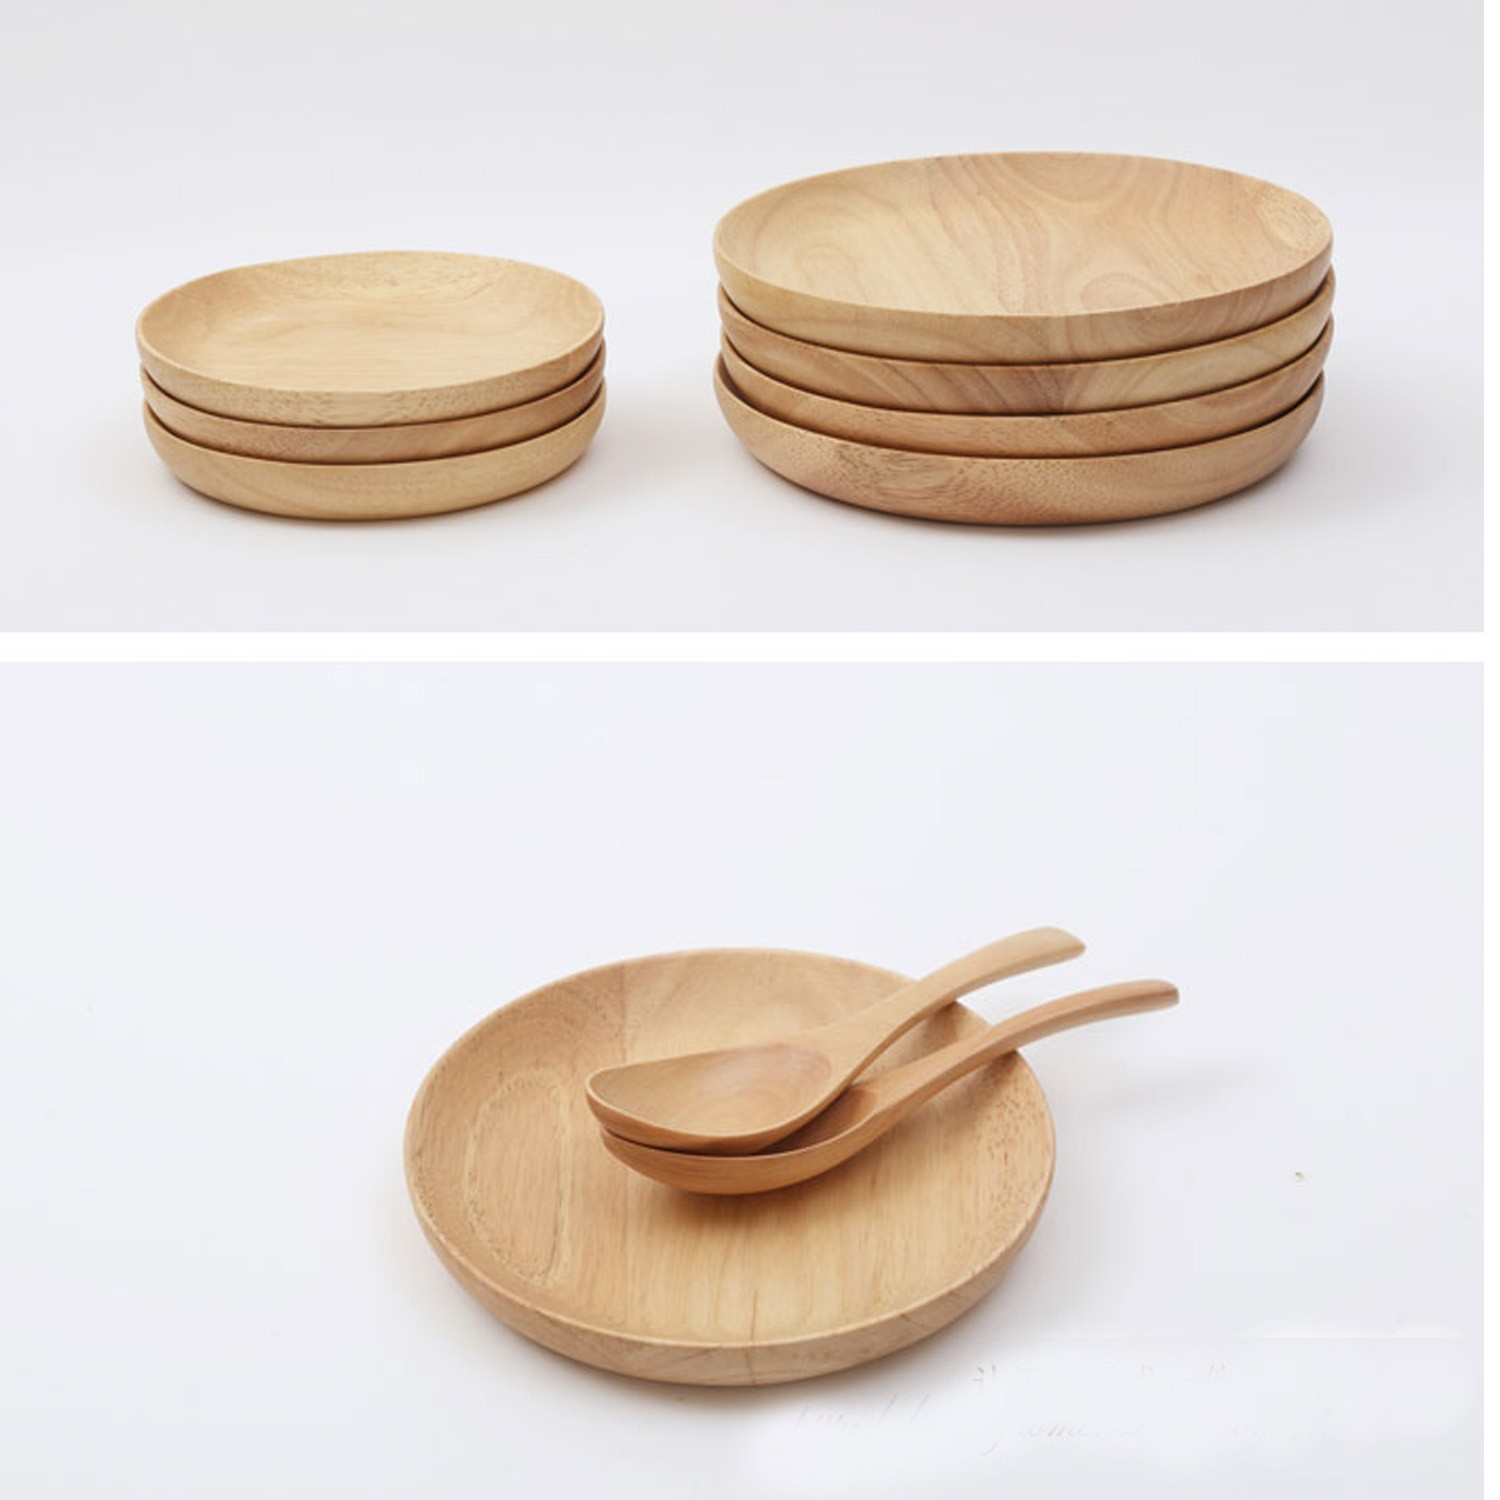 Small Wooden Bowls | Salad and Fruit Bowls | English Timbers |Small Wooden Bowls Saucers